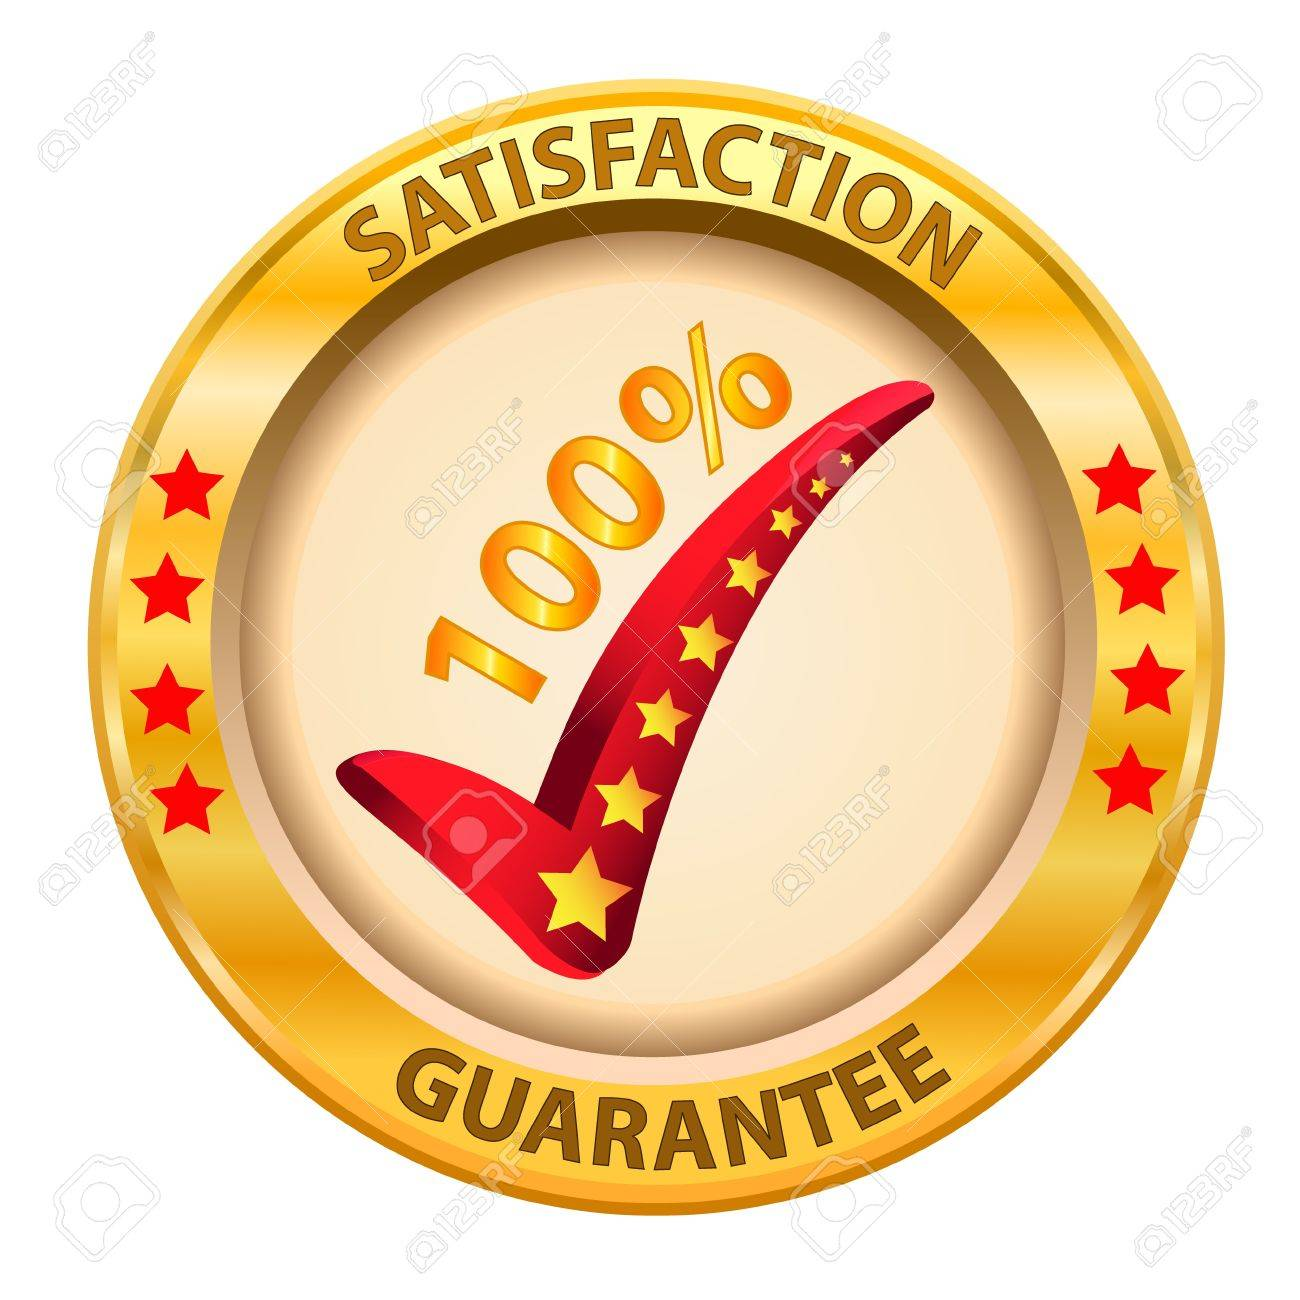 100  Satisfaction Guaranteed logo  Vector illustration Stock Vector - 14996217